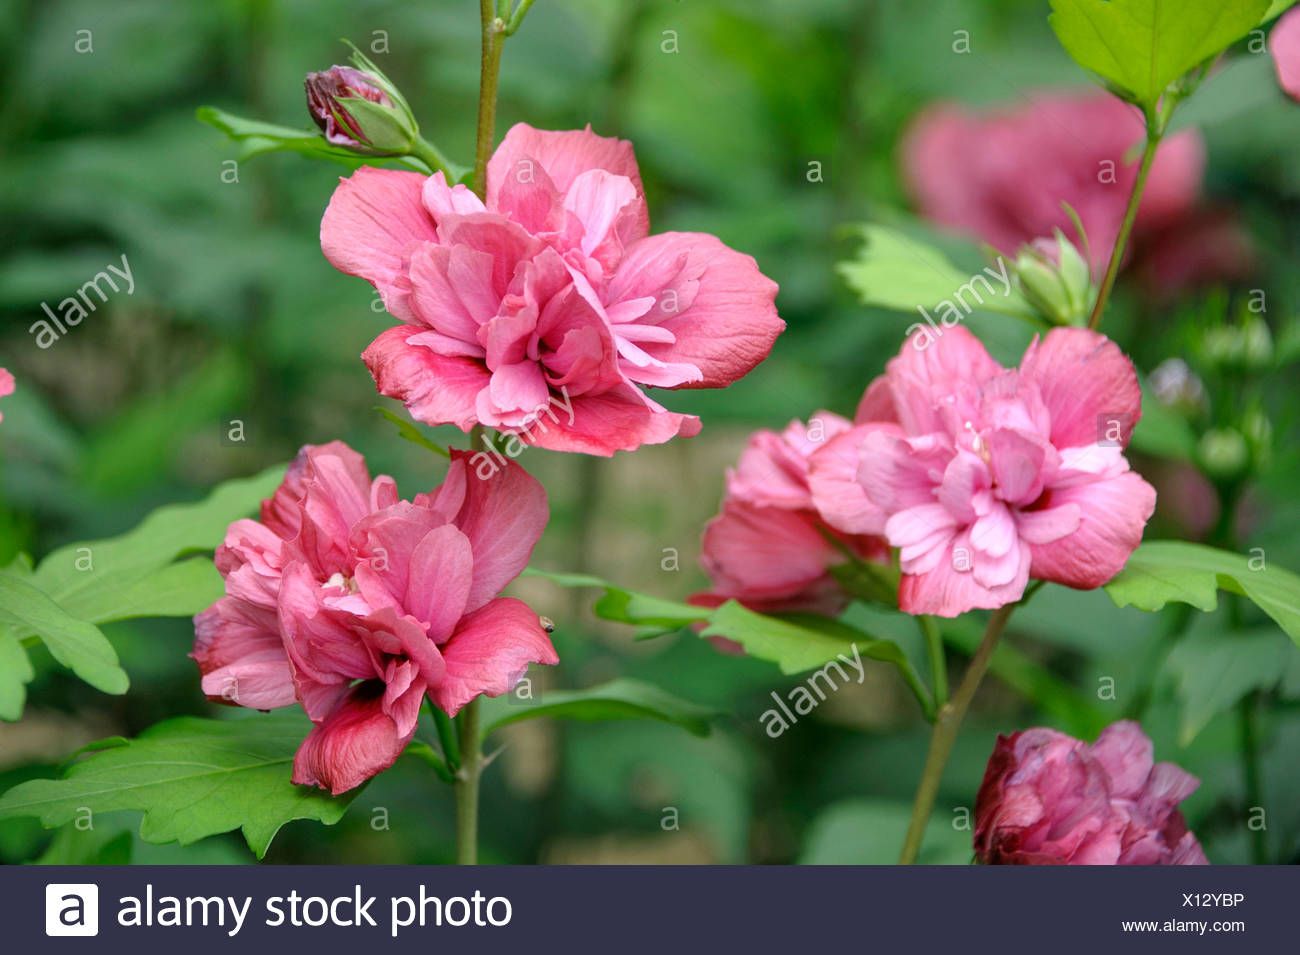 shrubby althaea, rose-of-Sharon (Hibiscus syriacus 'Freedom', Hibiscus syriacus Freedom), cultivar Freedom Stock Photo